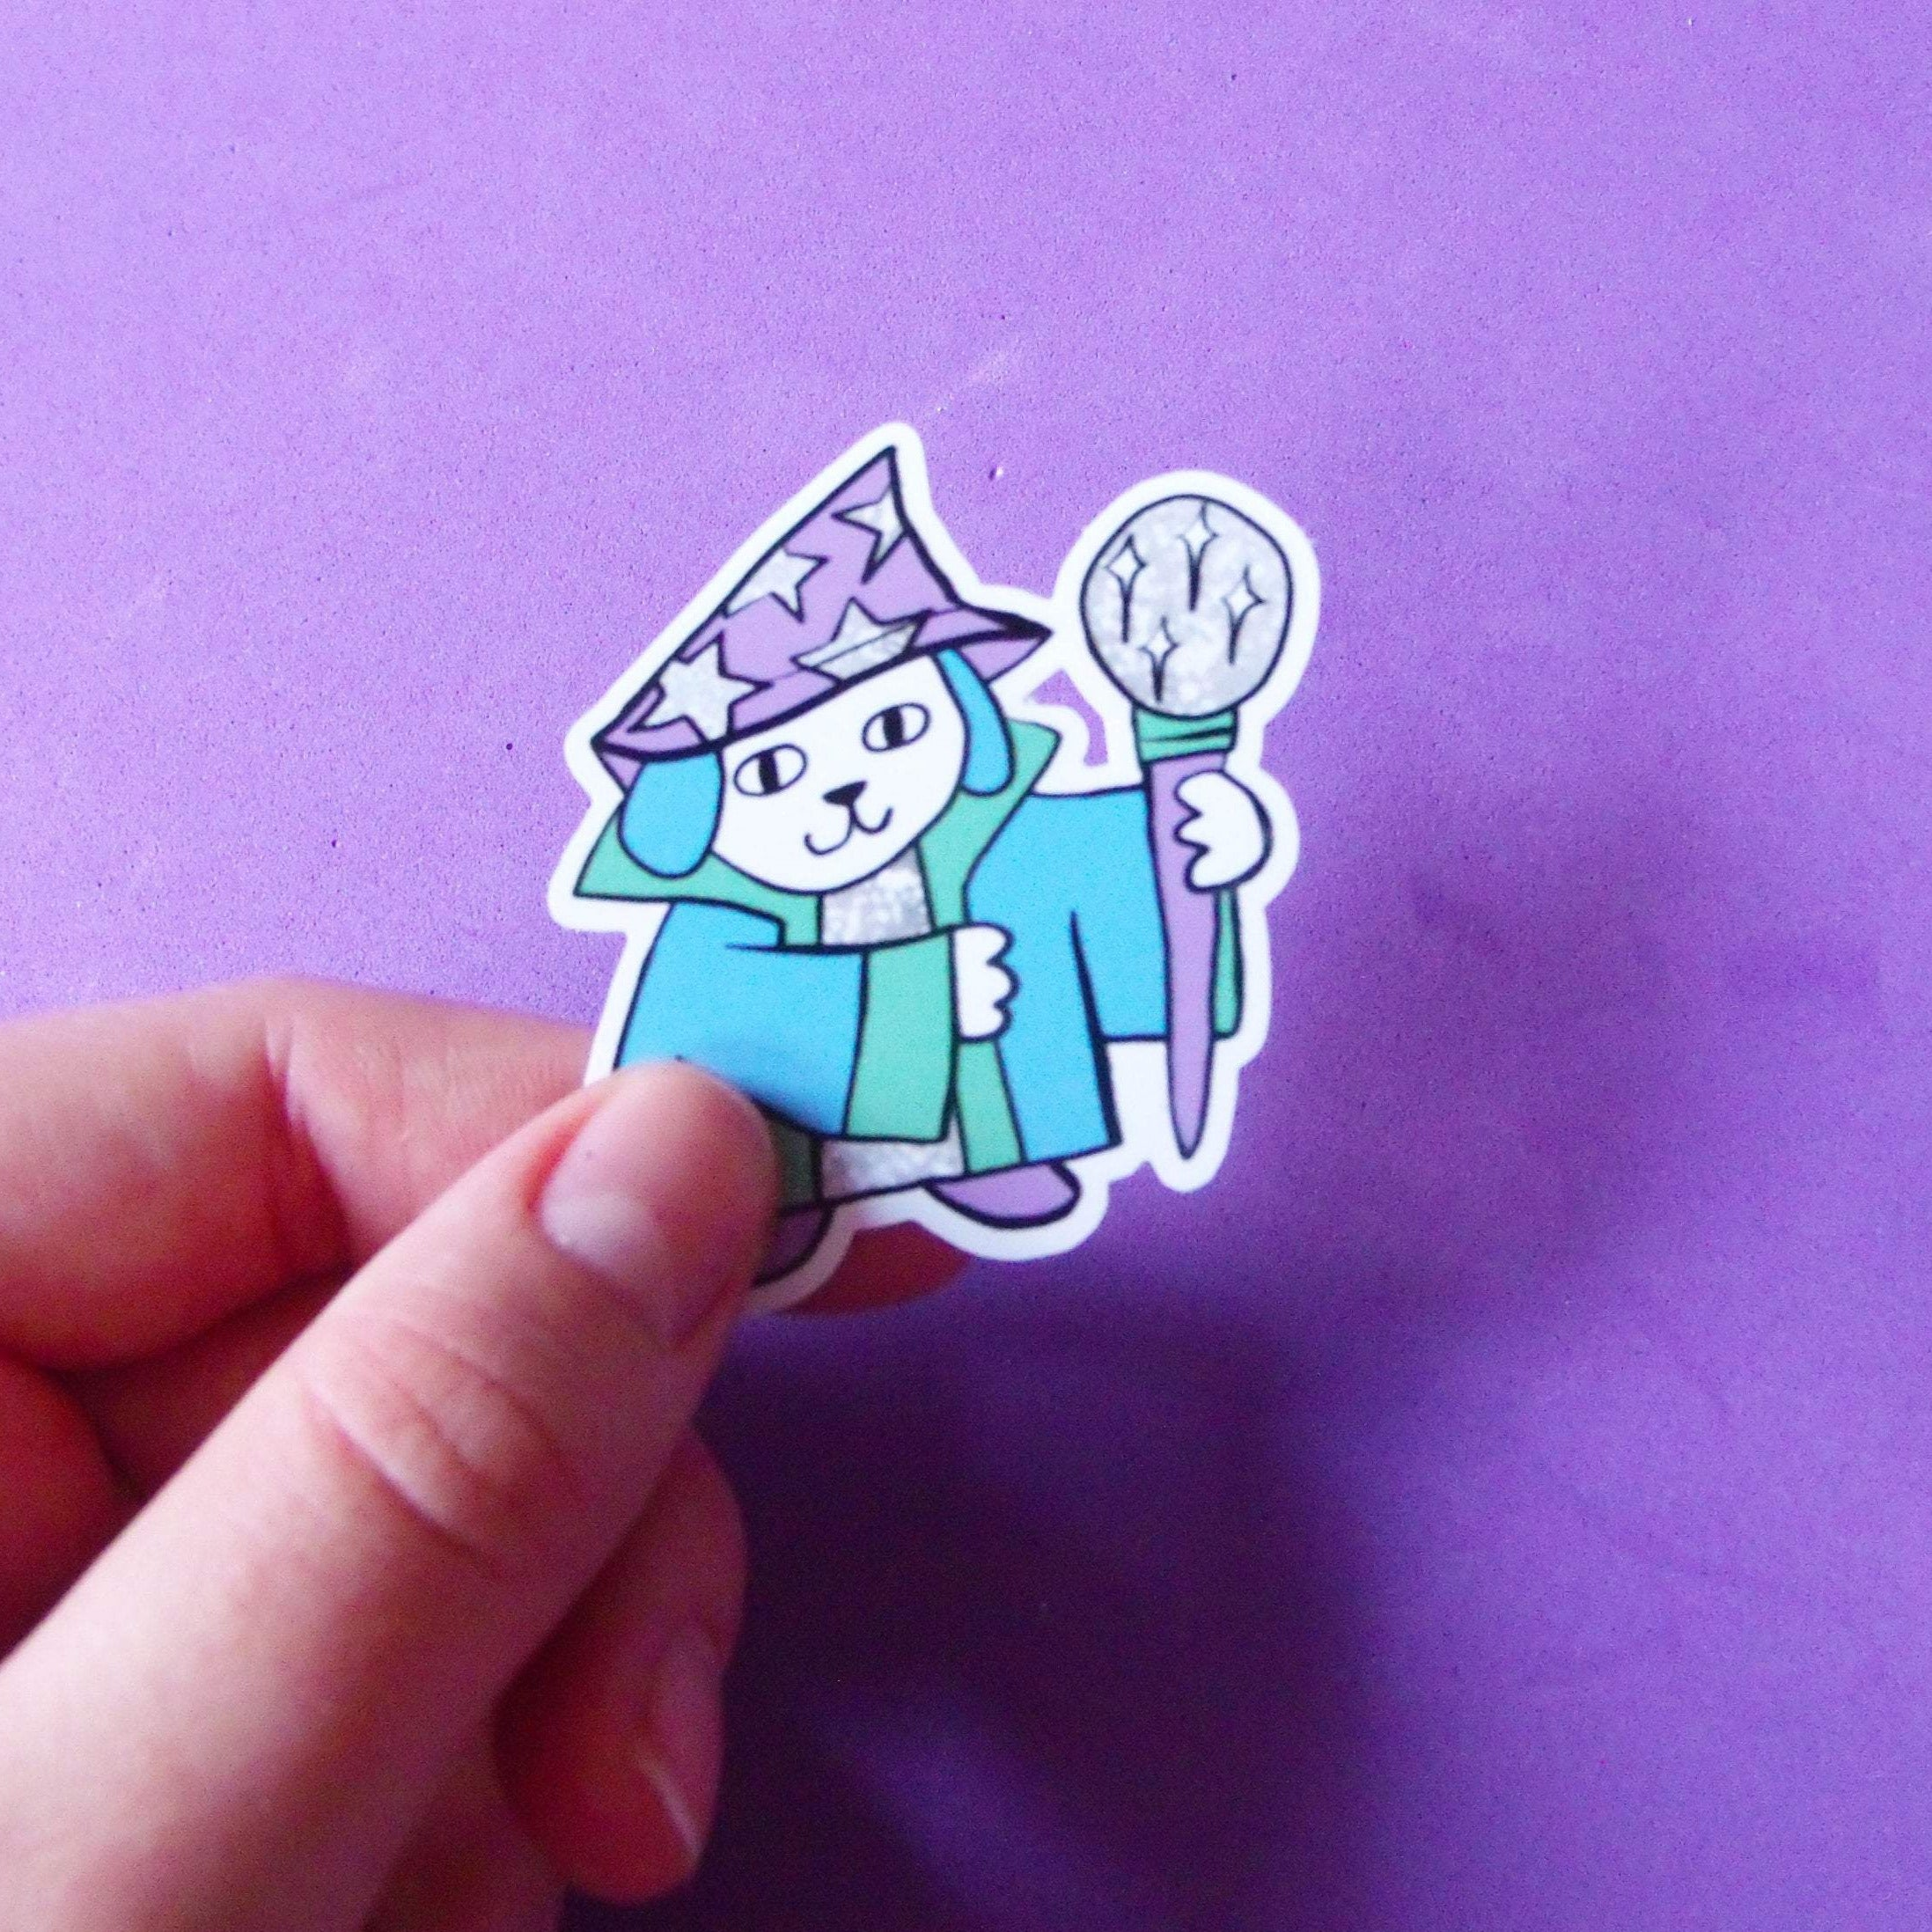 Sticker placed onto the corner of a yellow notebook. The sticker depicts an illustrated dog. He's a cute little wizard, wearing a robe, a star print hat and holding a staff.